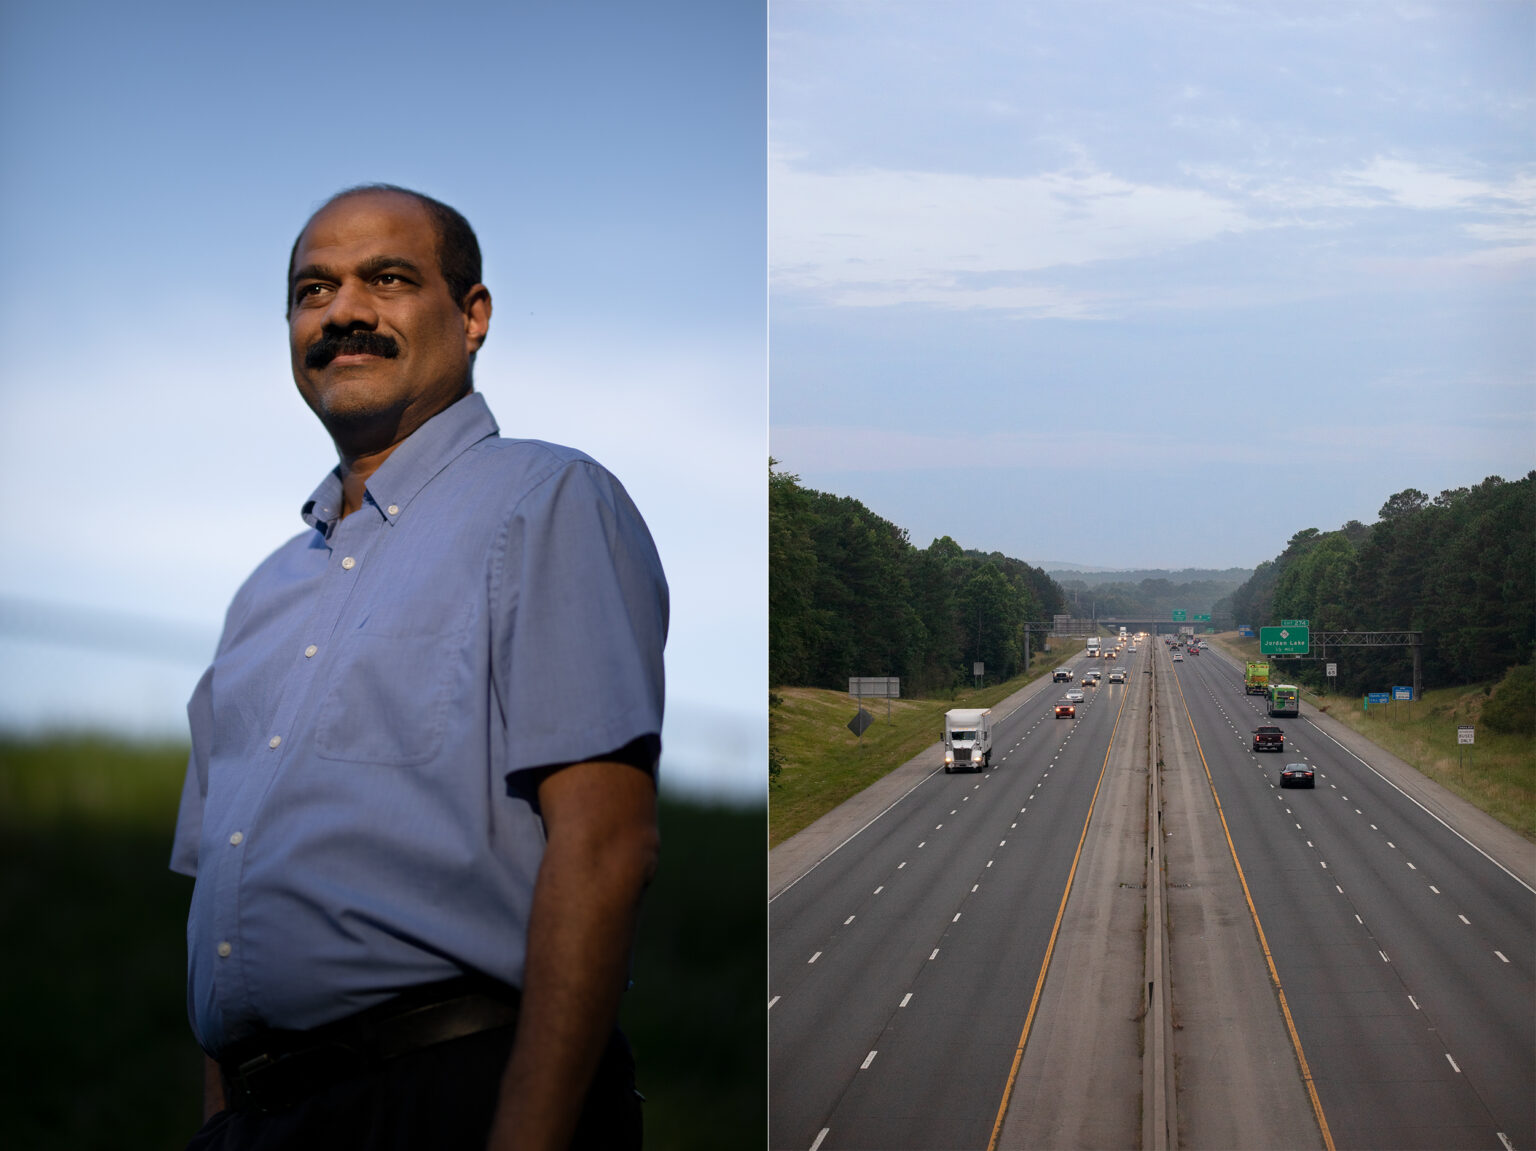 On the left, Sarav Arunachalam poses for a photo. On the right, an aerial photo of a highway.